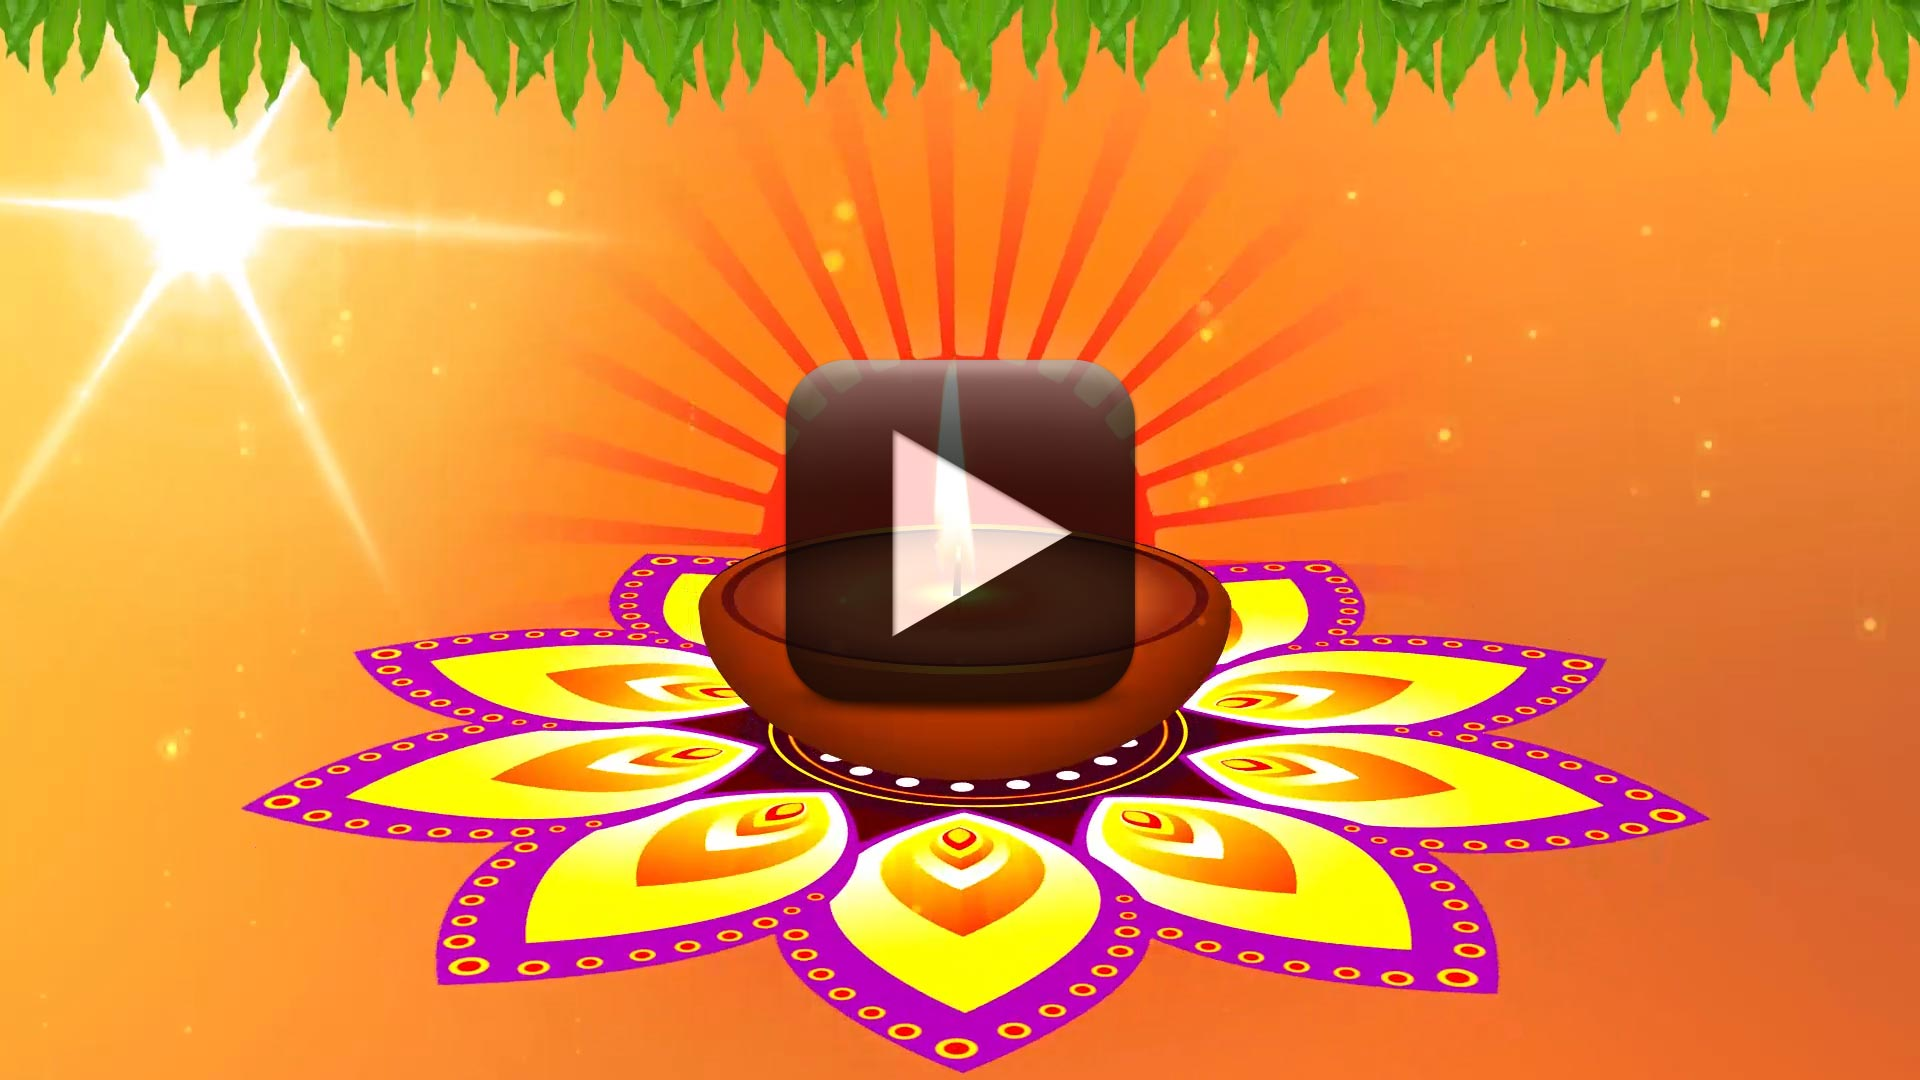 Free Video Effects Titles Background